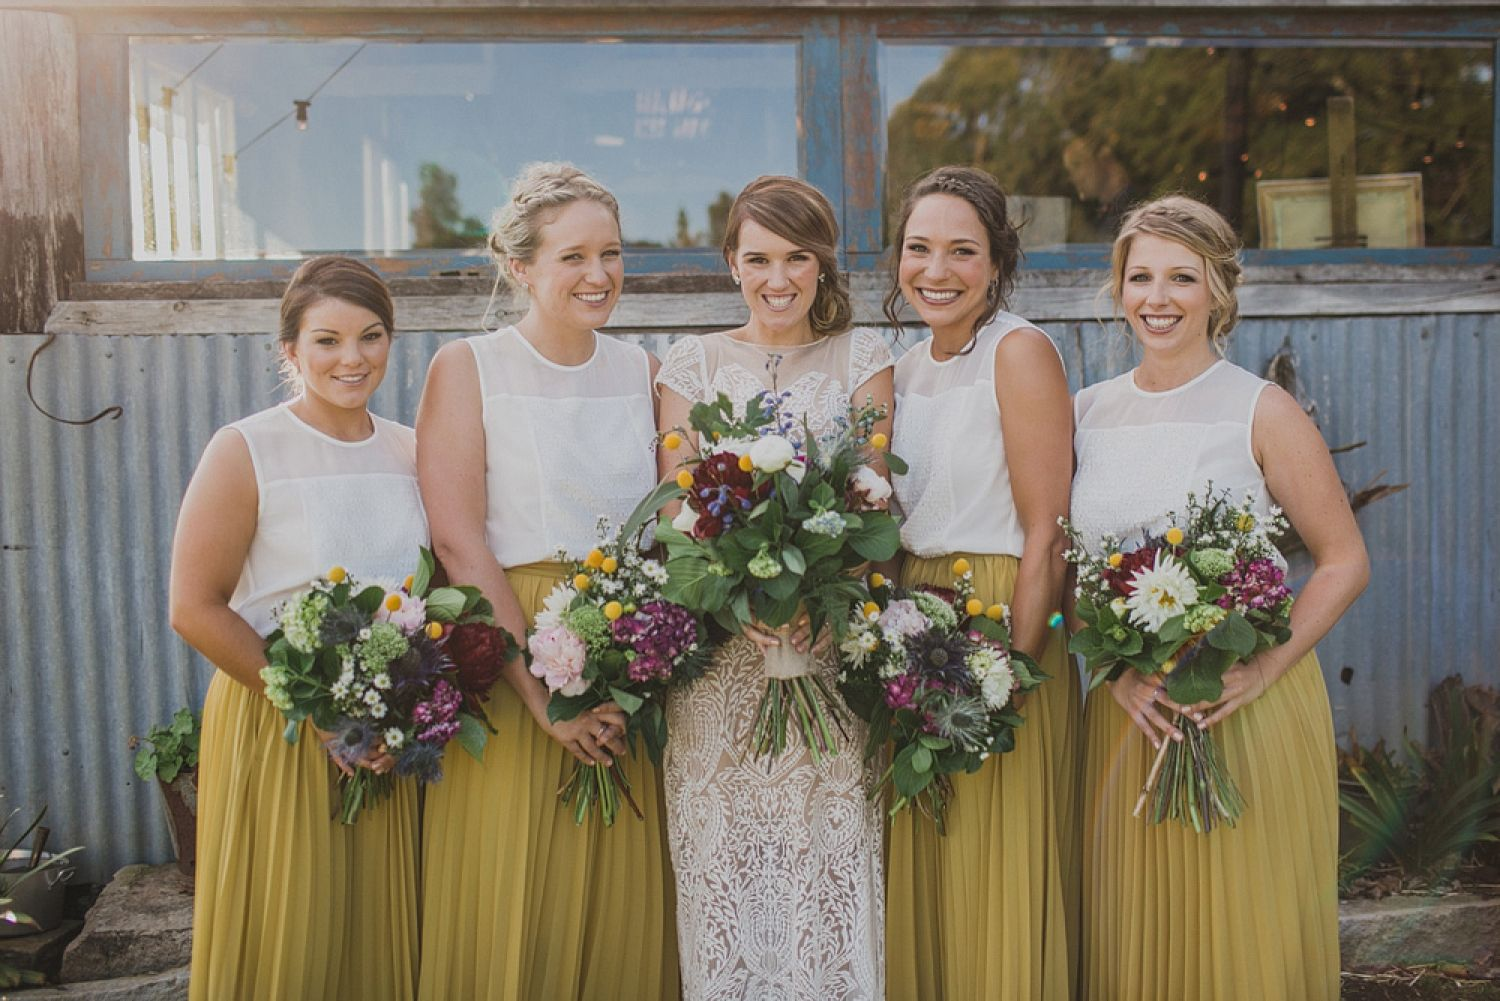 Love The Idea Of A Skirt+top For The Bridesmaids (relaxed